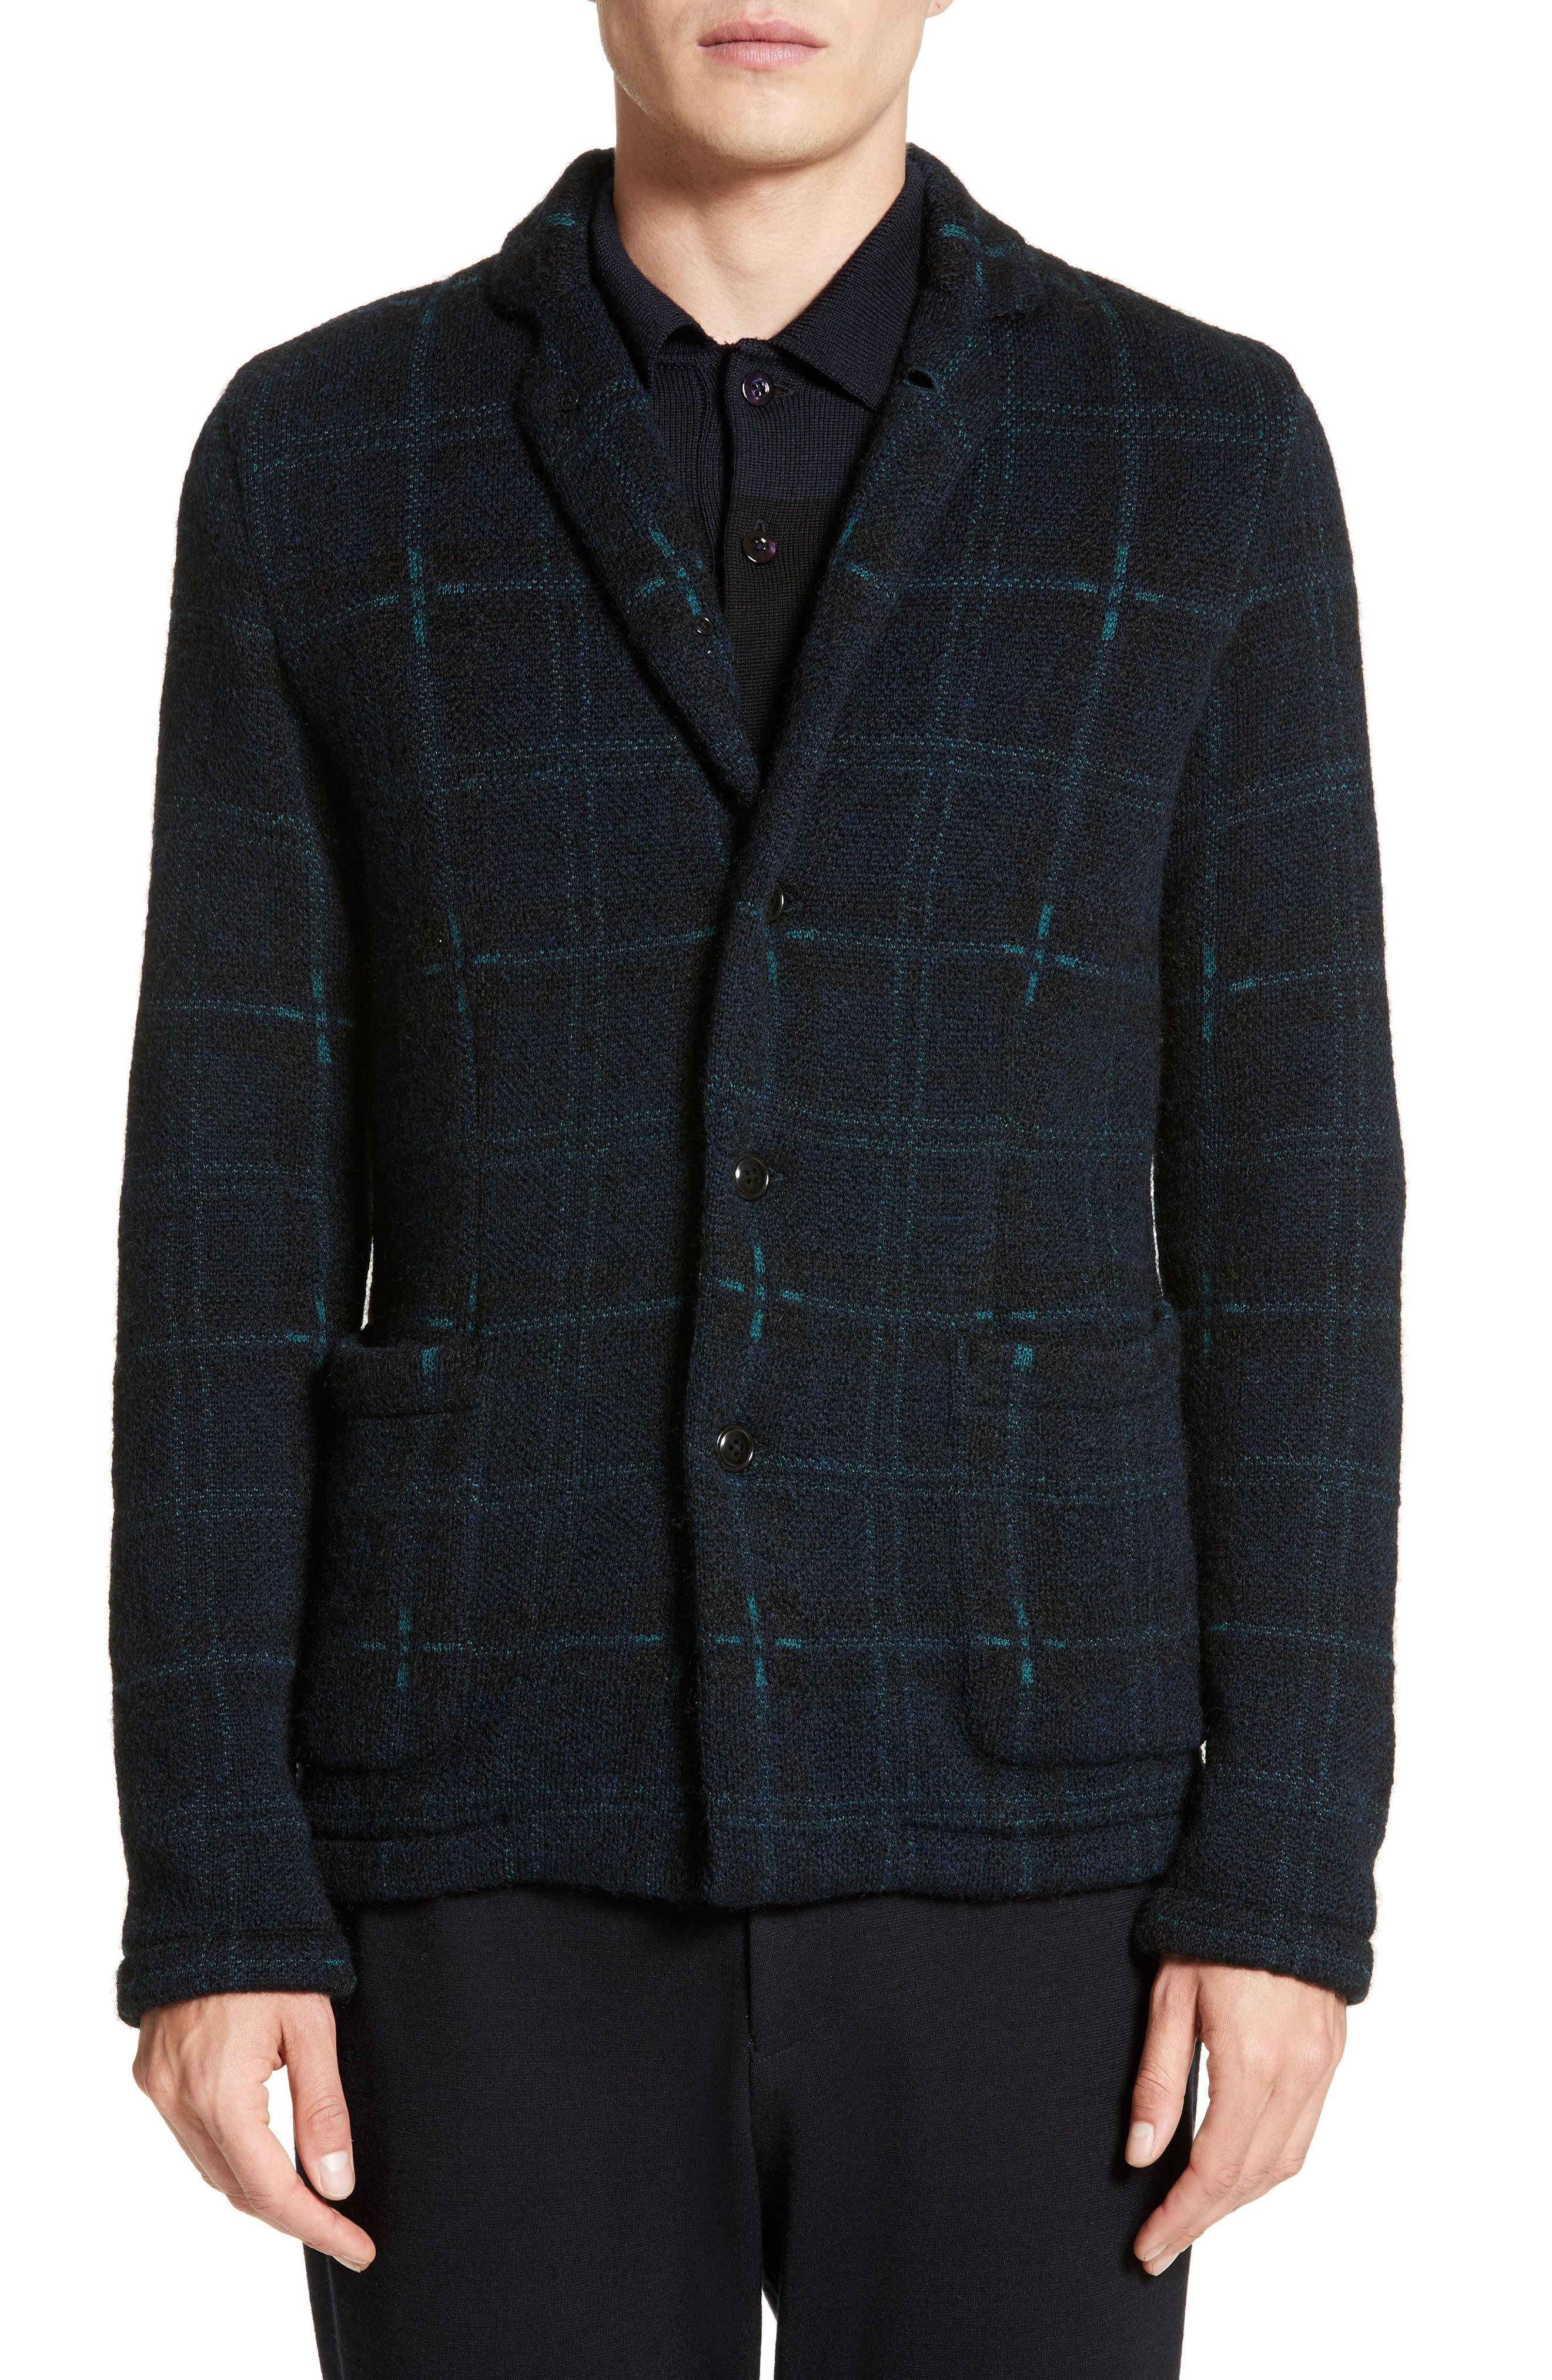 Alternate Image 1 Selected - Tomorrowland Wool Blend Knit Sportcoat